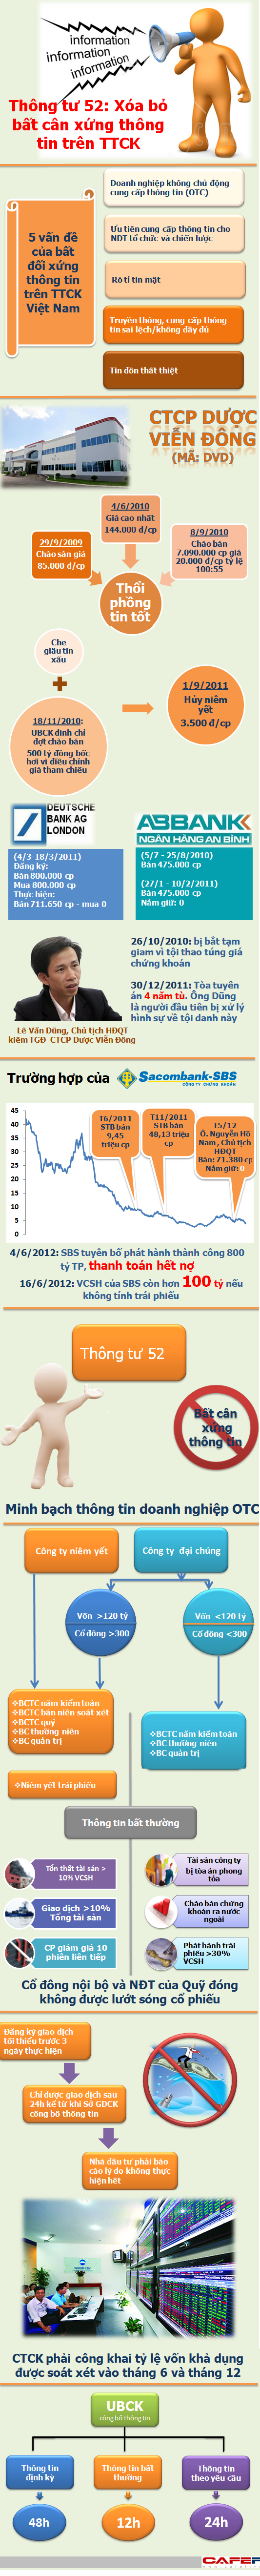 [Infographic]: Thng t 52 v vn  bt cn xng thng tin trn TTCK (1)